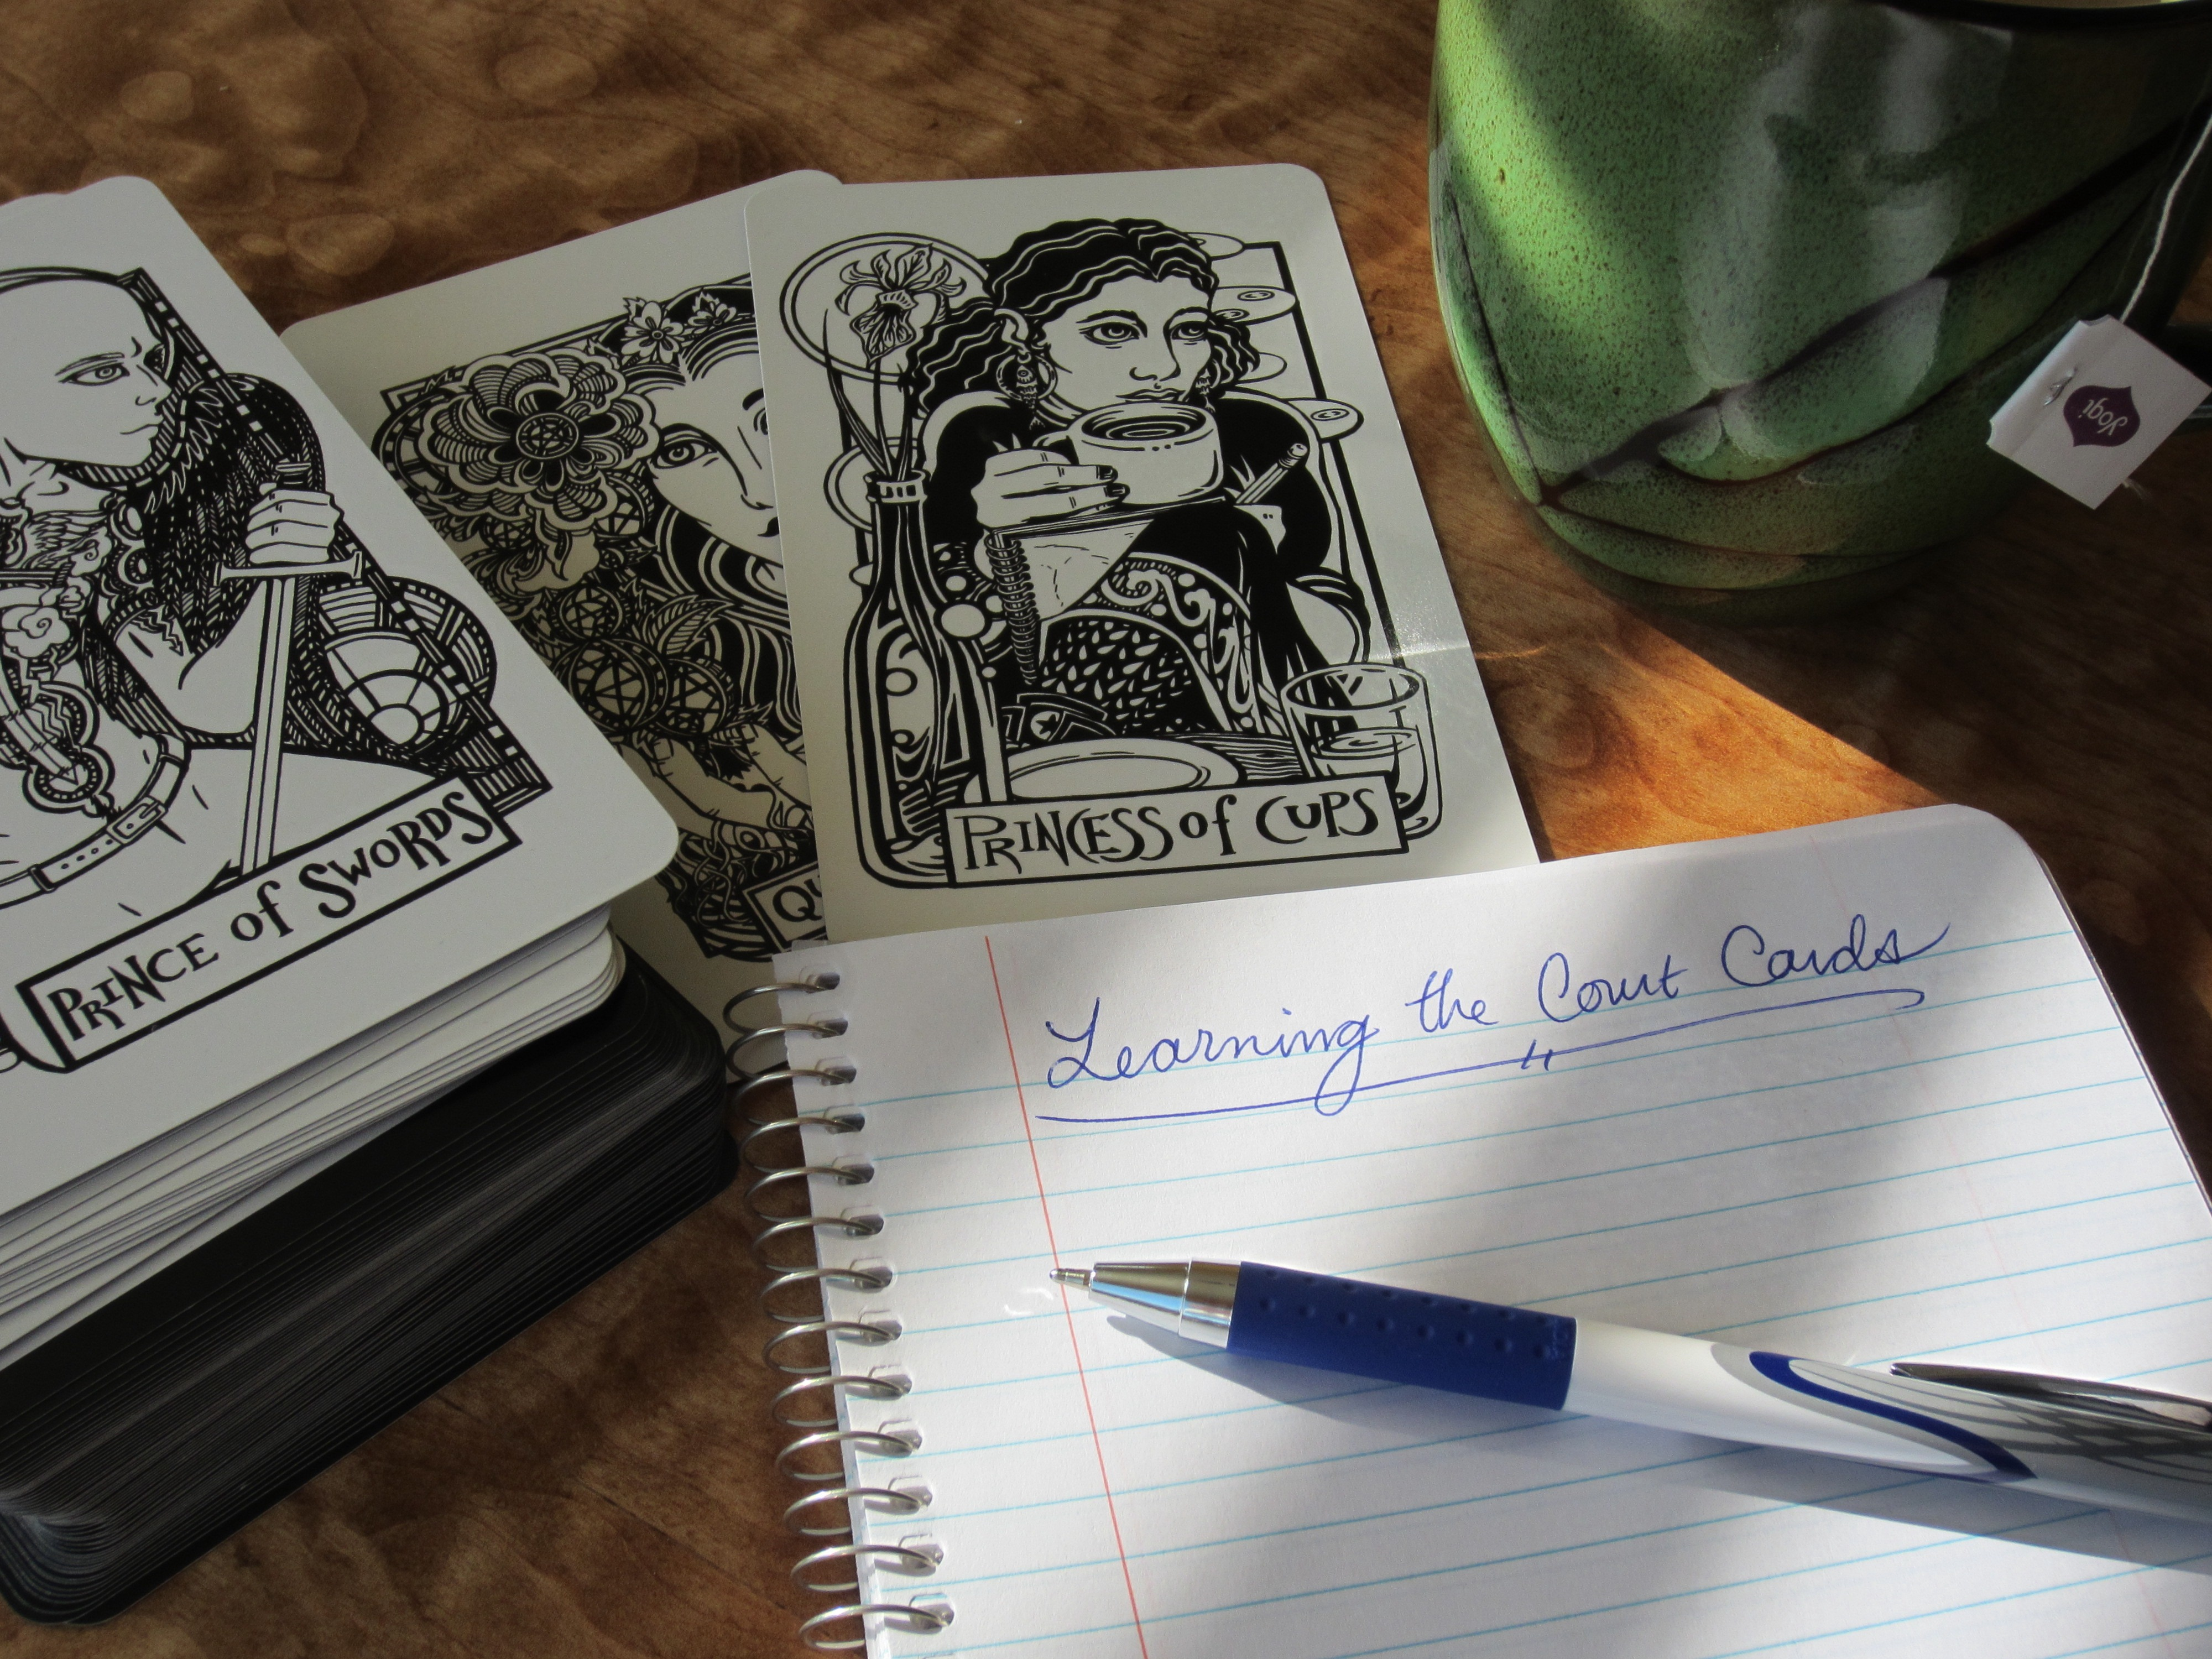 Learn The Tarot Court Cards